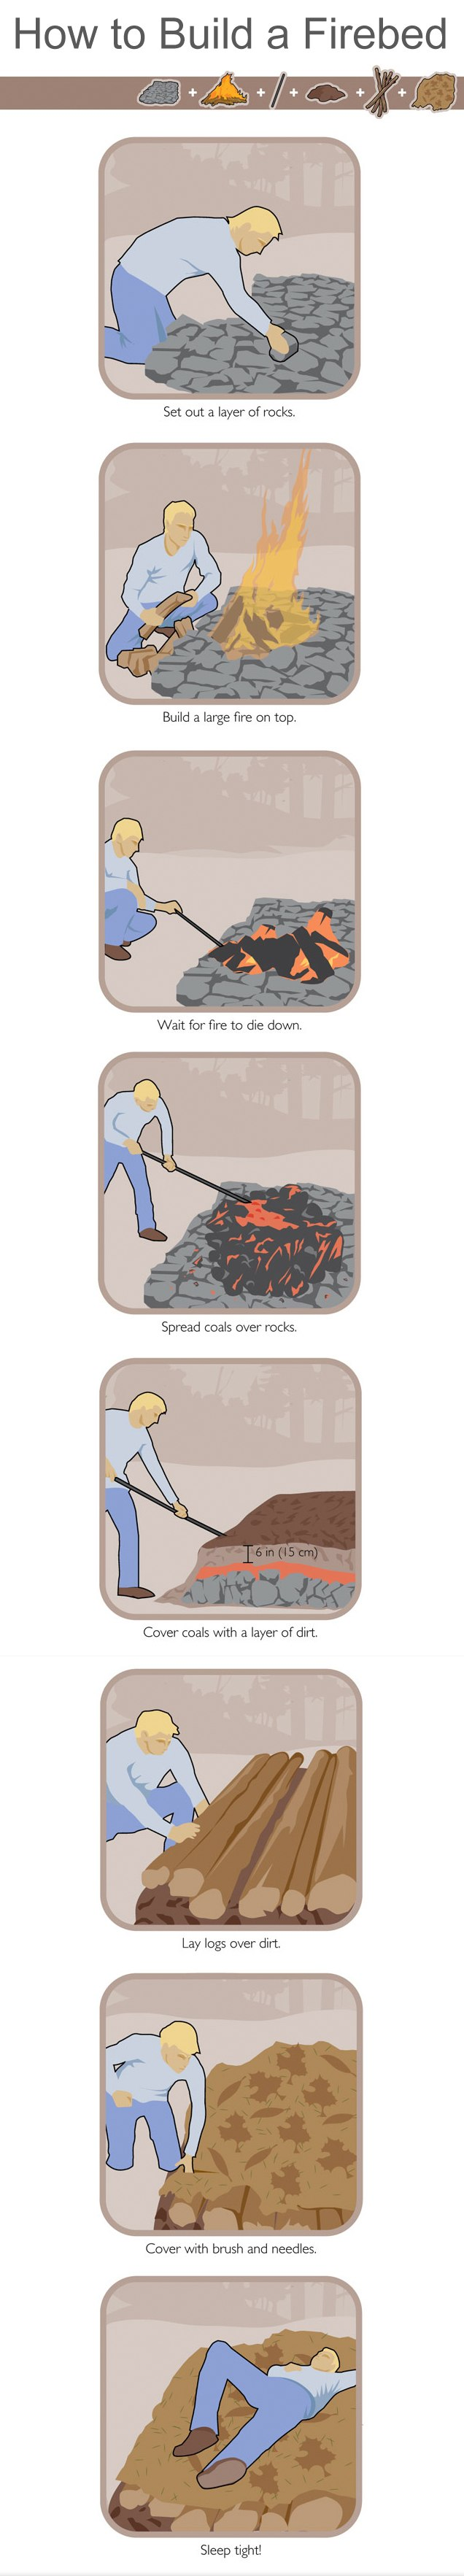 Firebed How to build a firebed [INFOGRAPHIC]